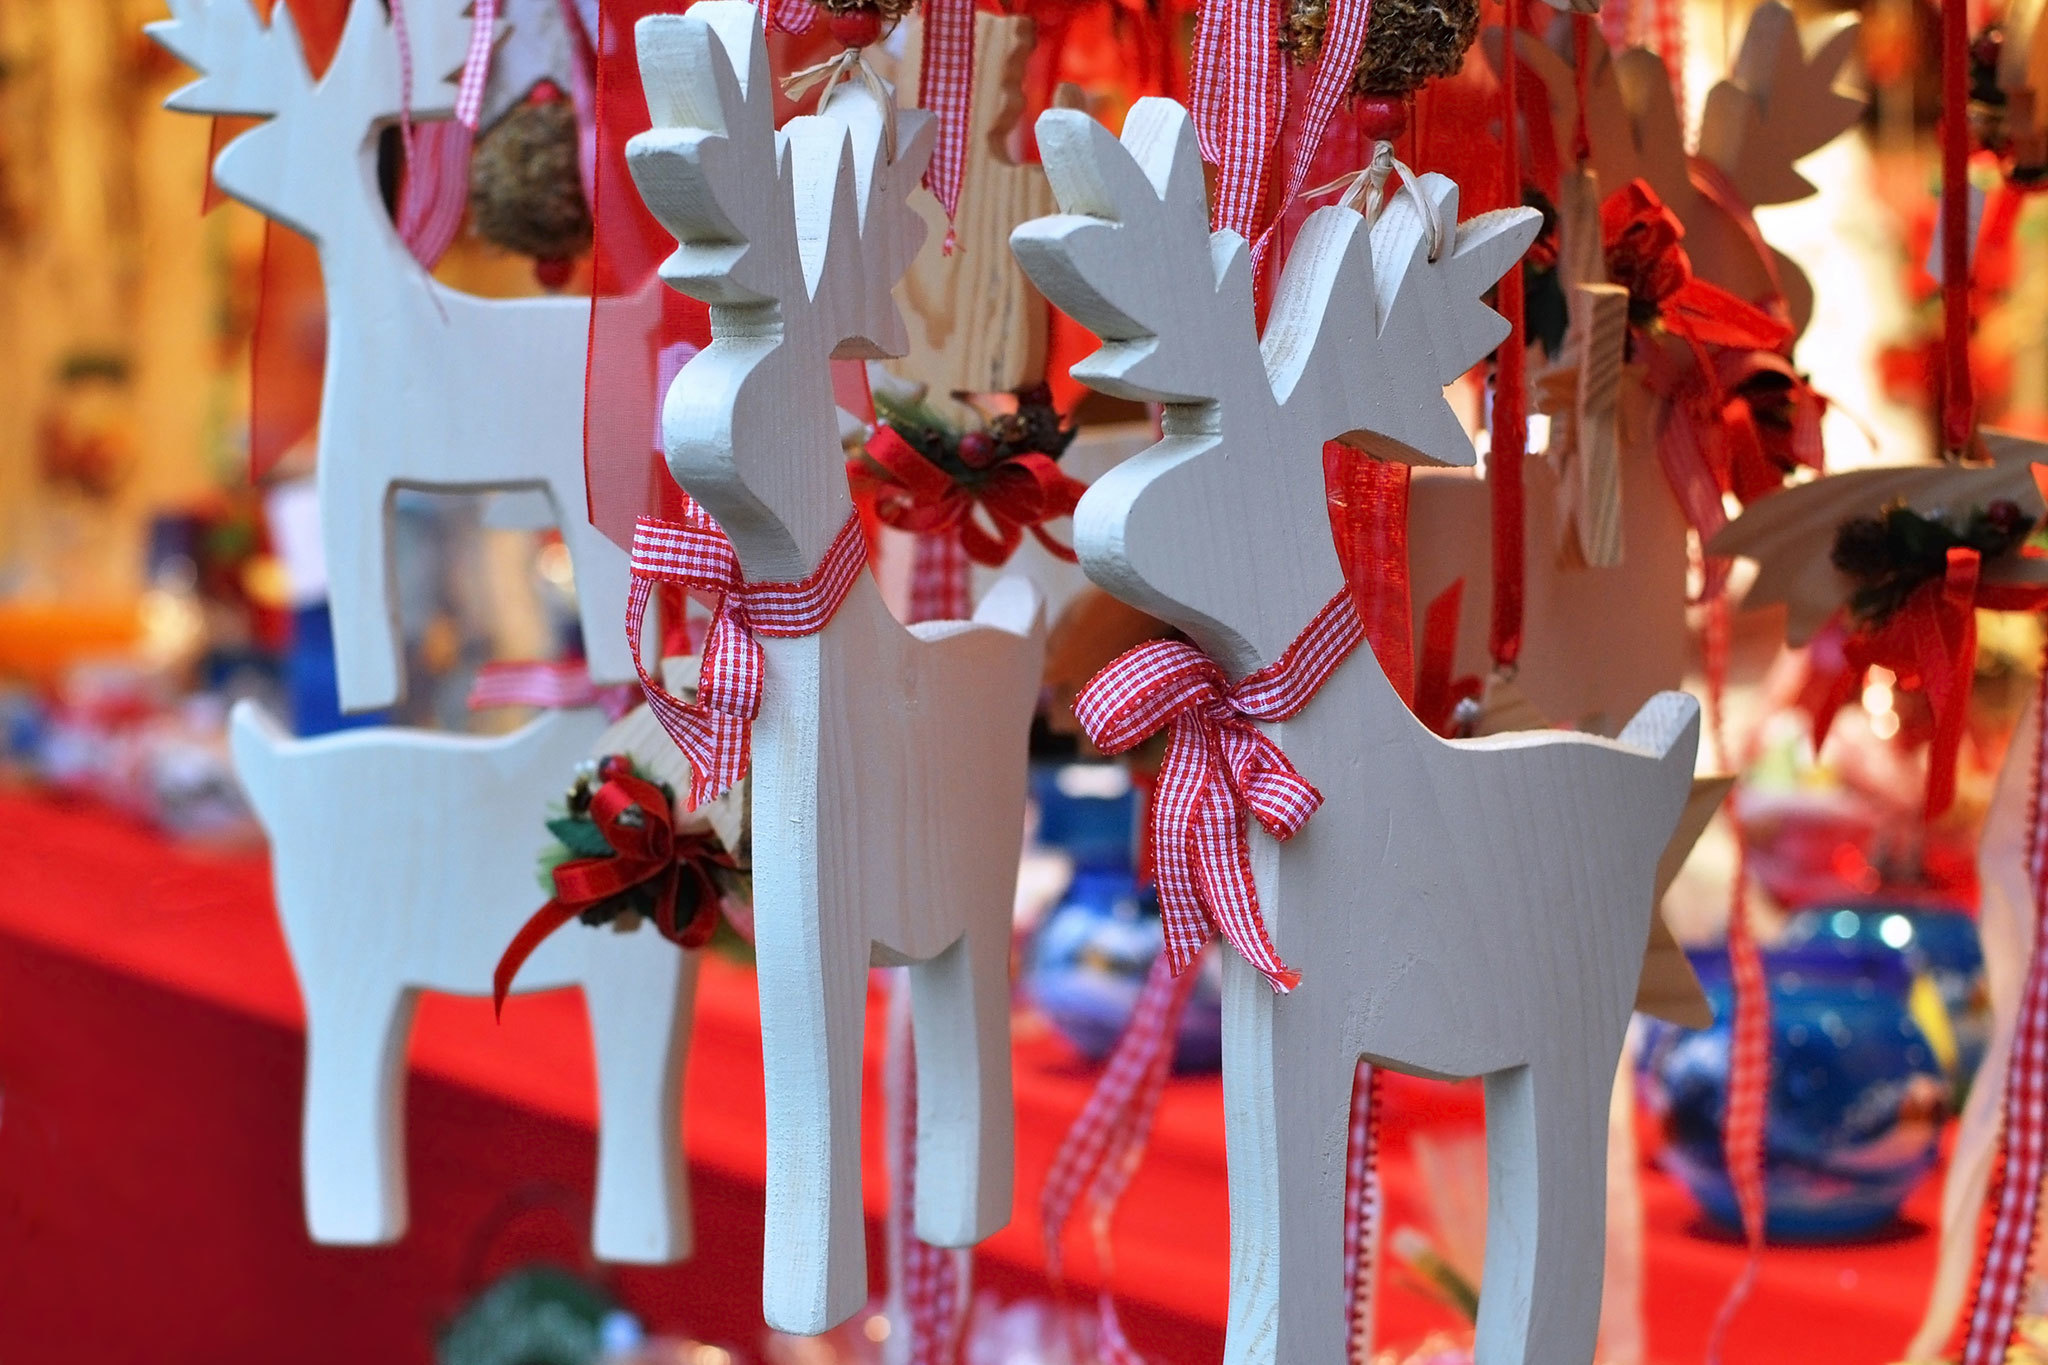 Holiday markets in San Francisco